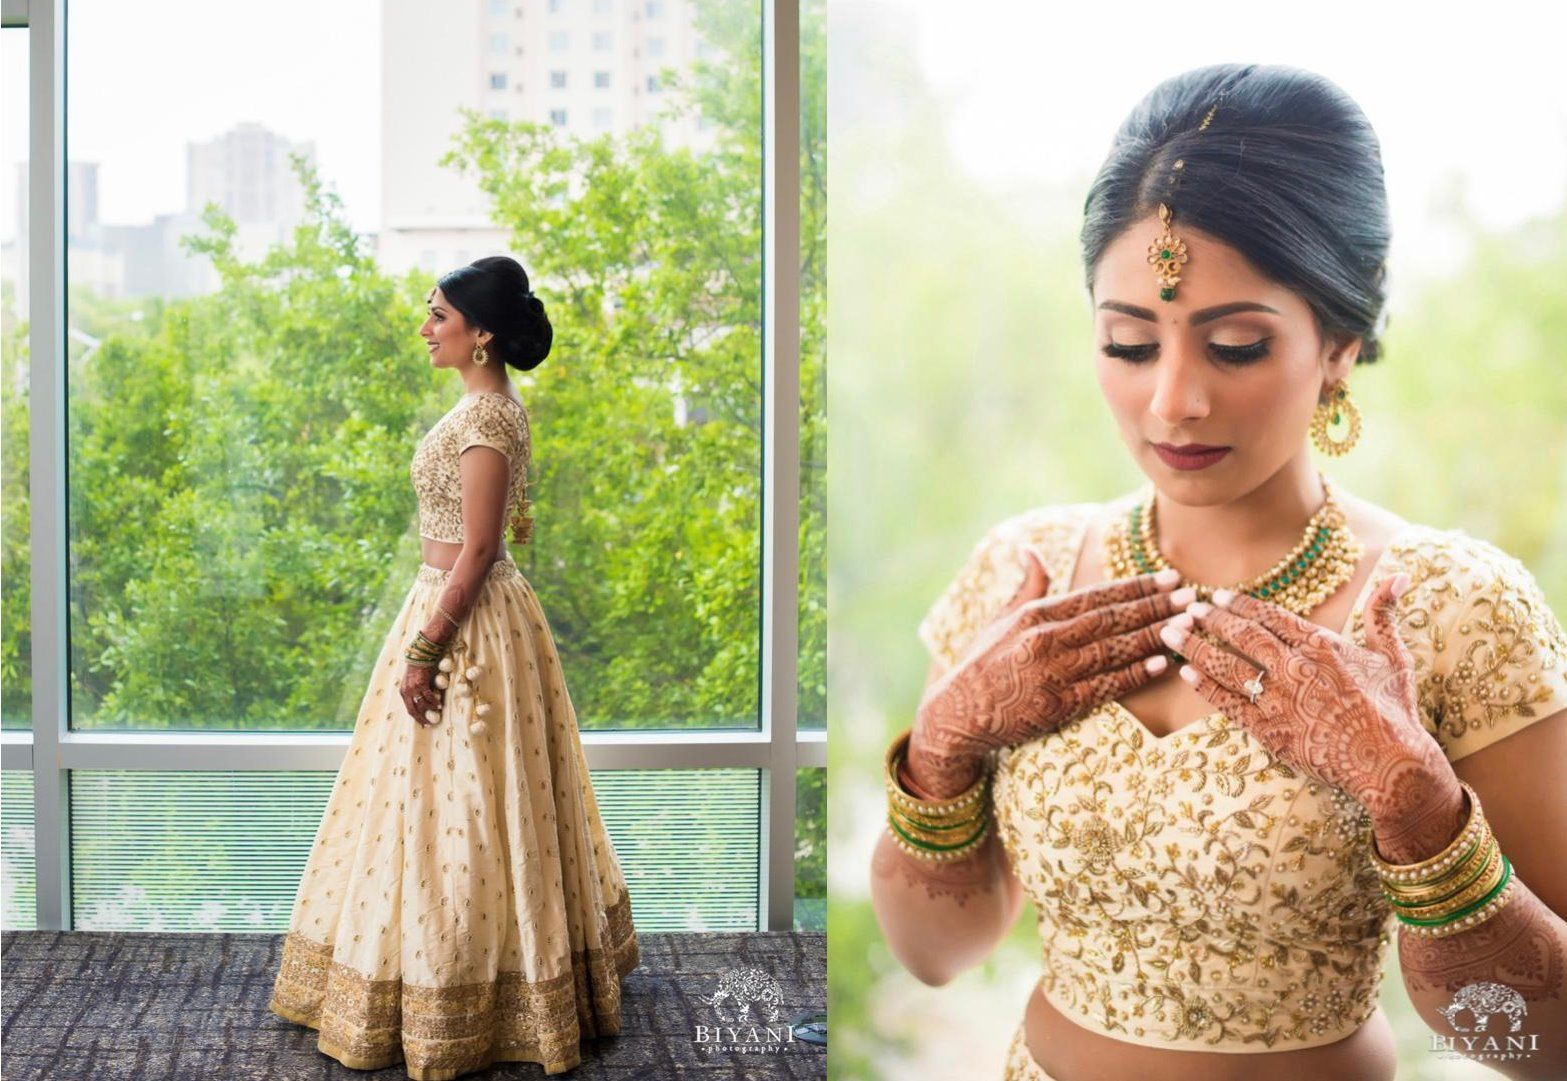 Our Bride Niti from Texas, USA